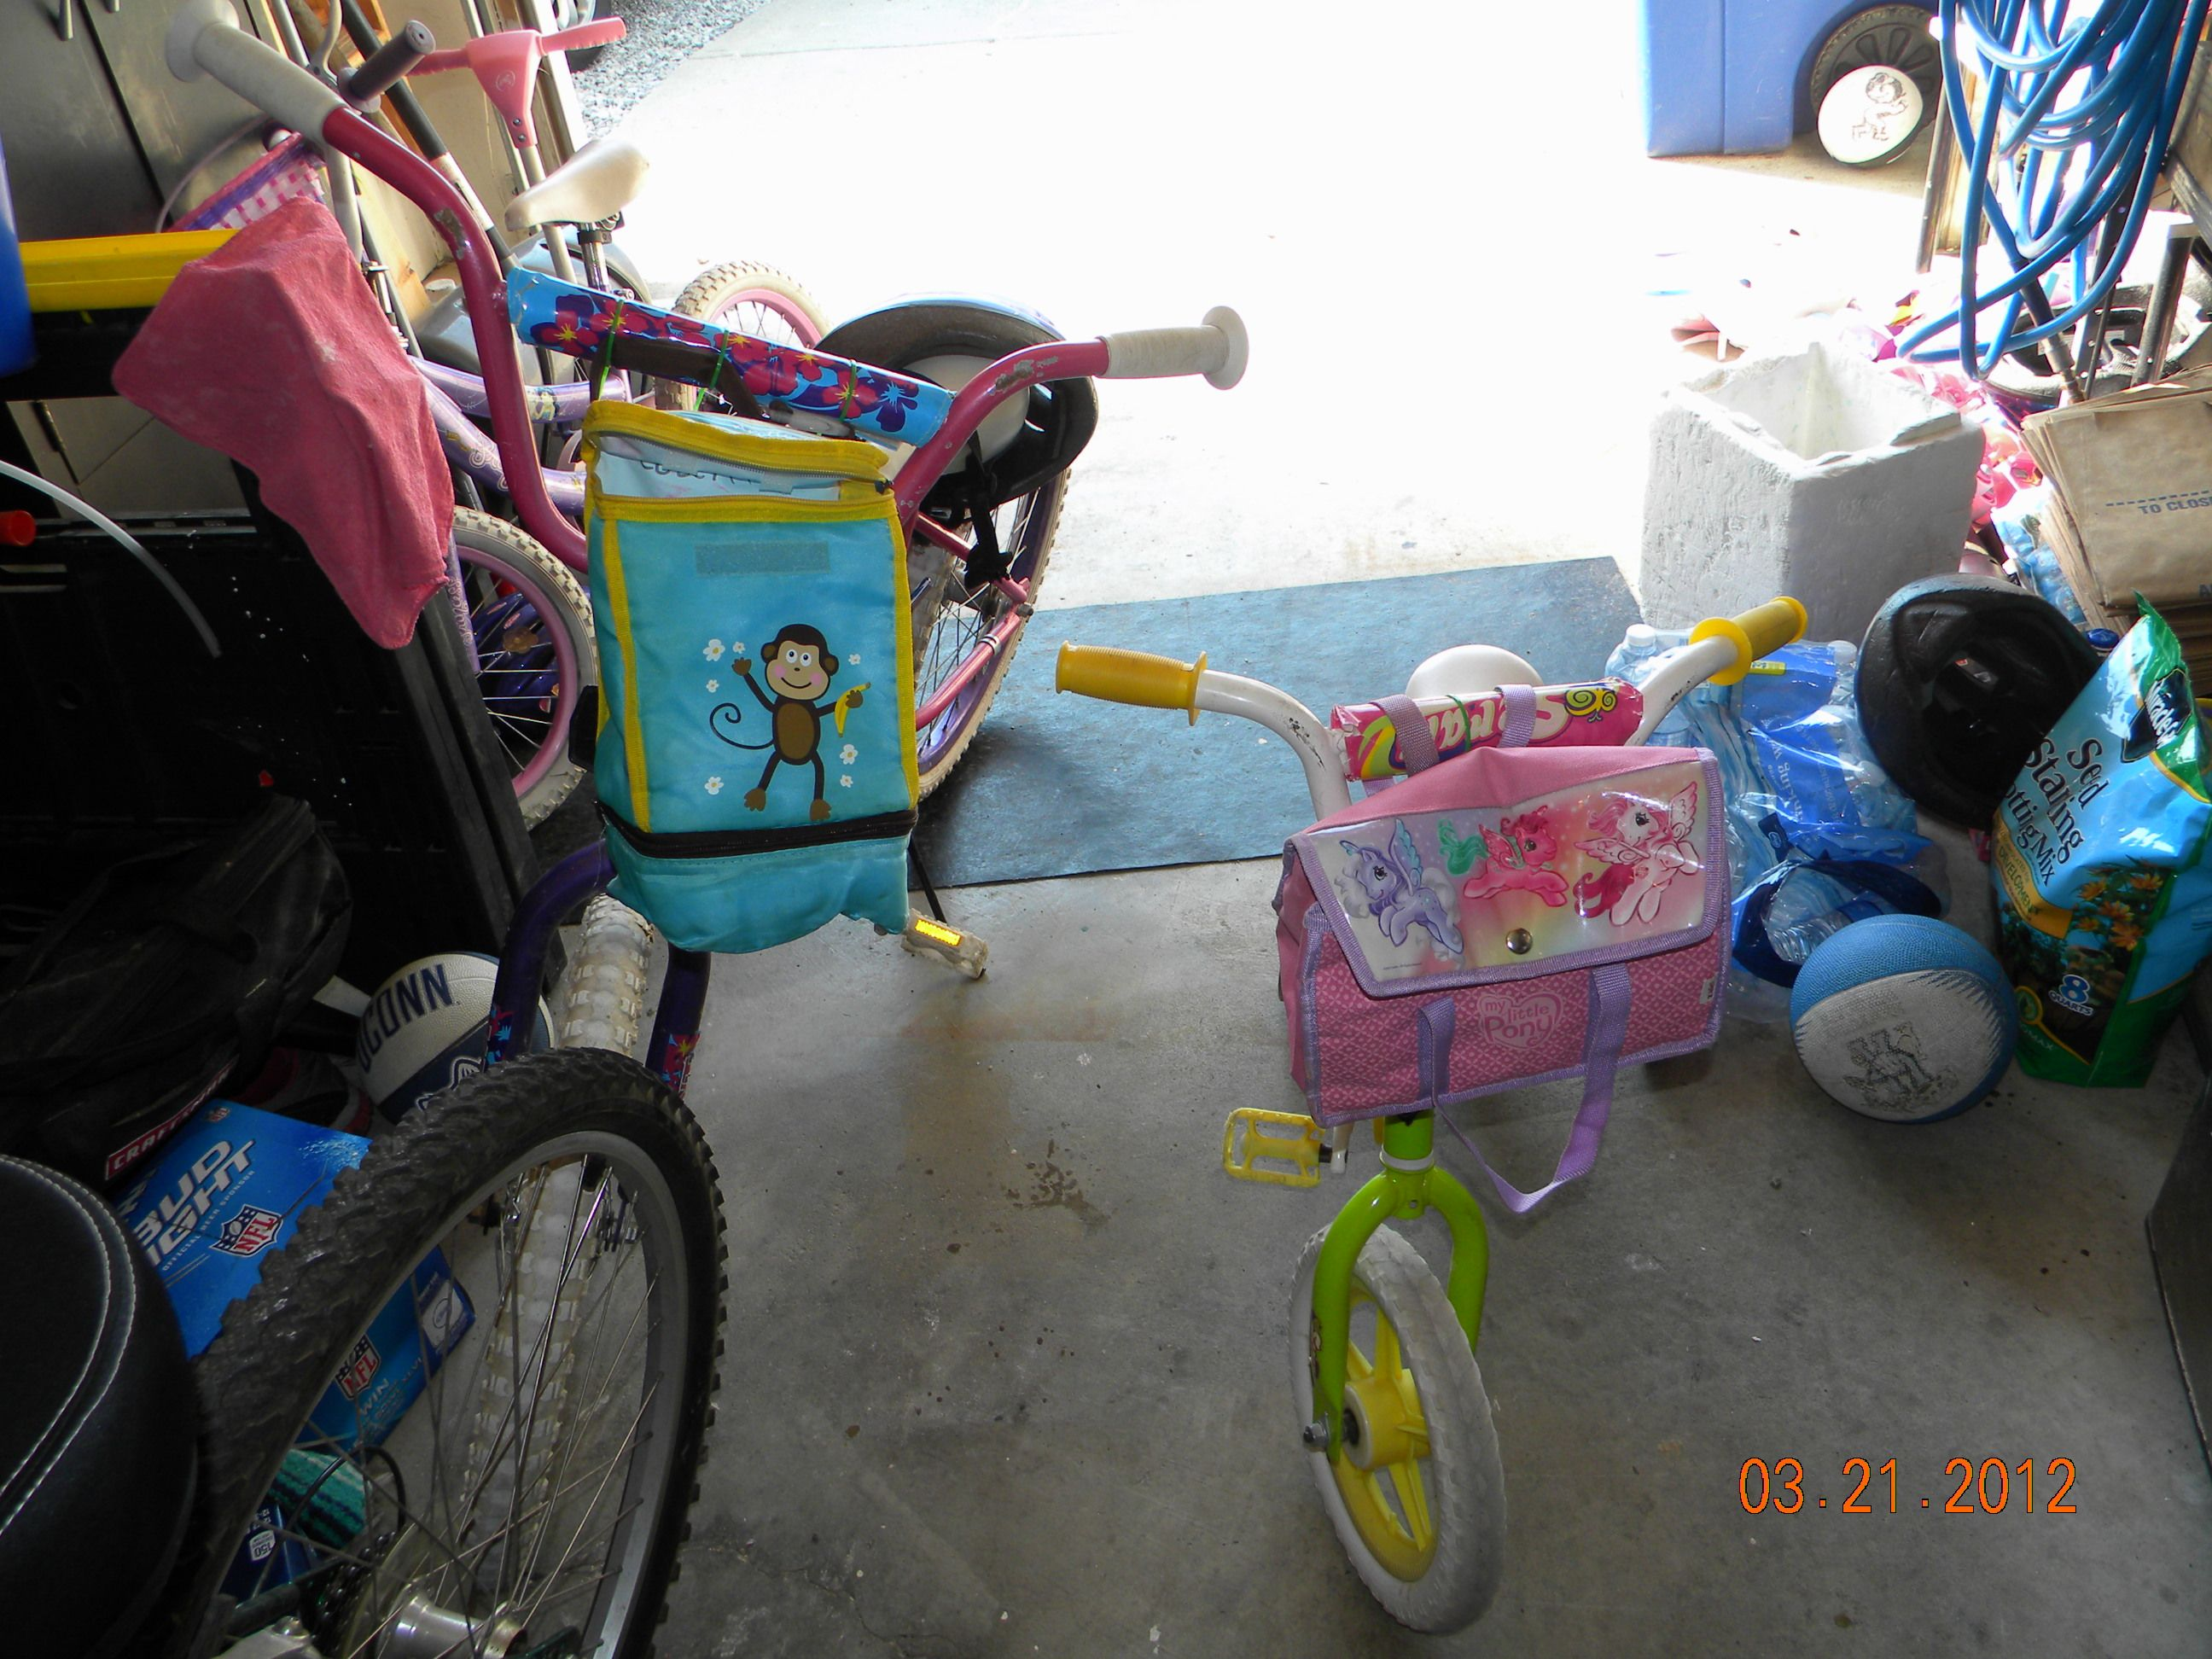 I Added Used Lunch Bags To The Kids Handlebars On Their